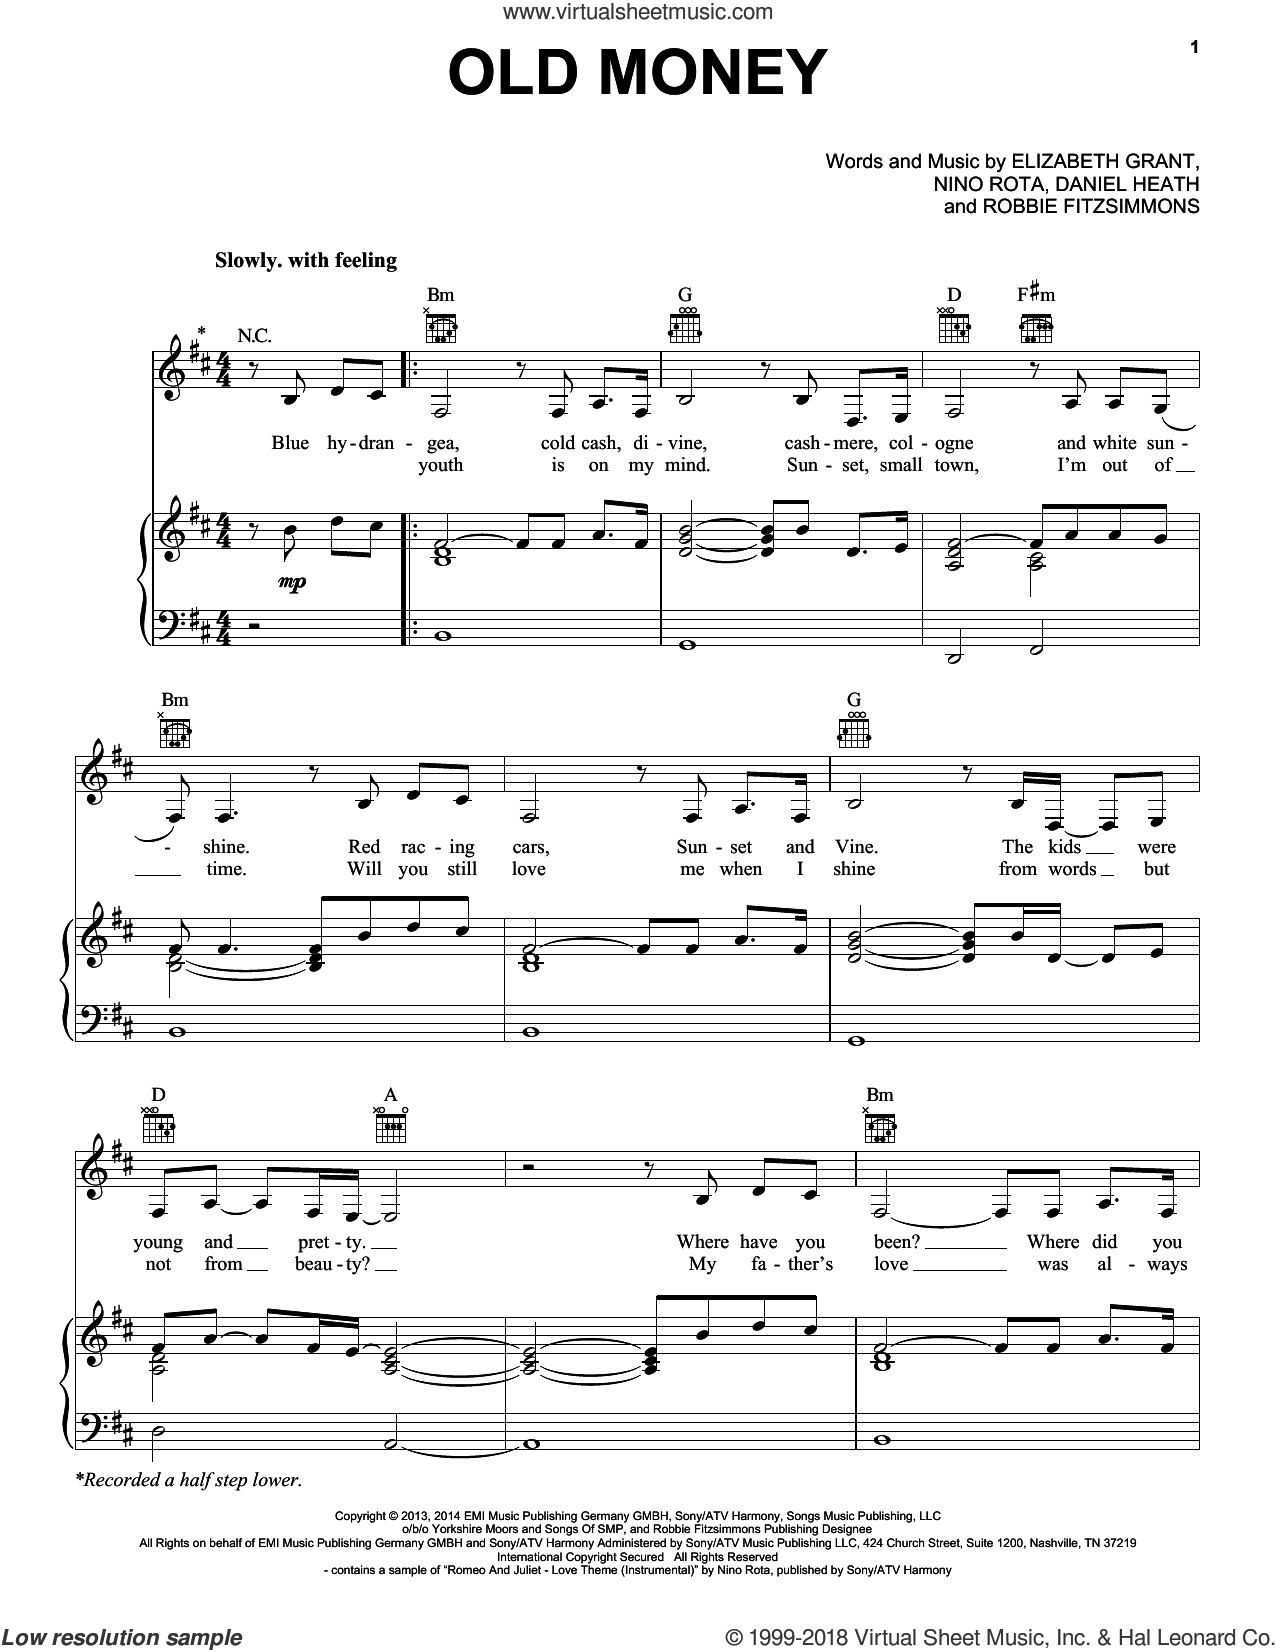 Old Money sheet music for voice, piano or guitar by Lana Del Rey, Daniel Heath, Elizabeth Grant, Nino Rota and Robbie Fitzsimmons, intermediate skill level